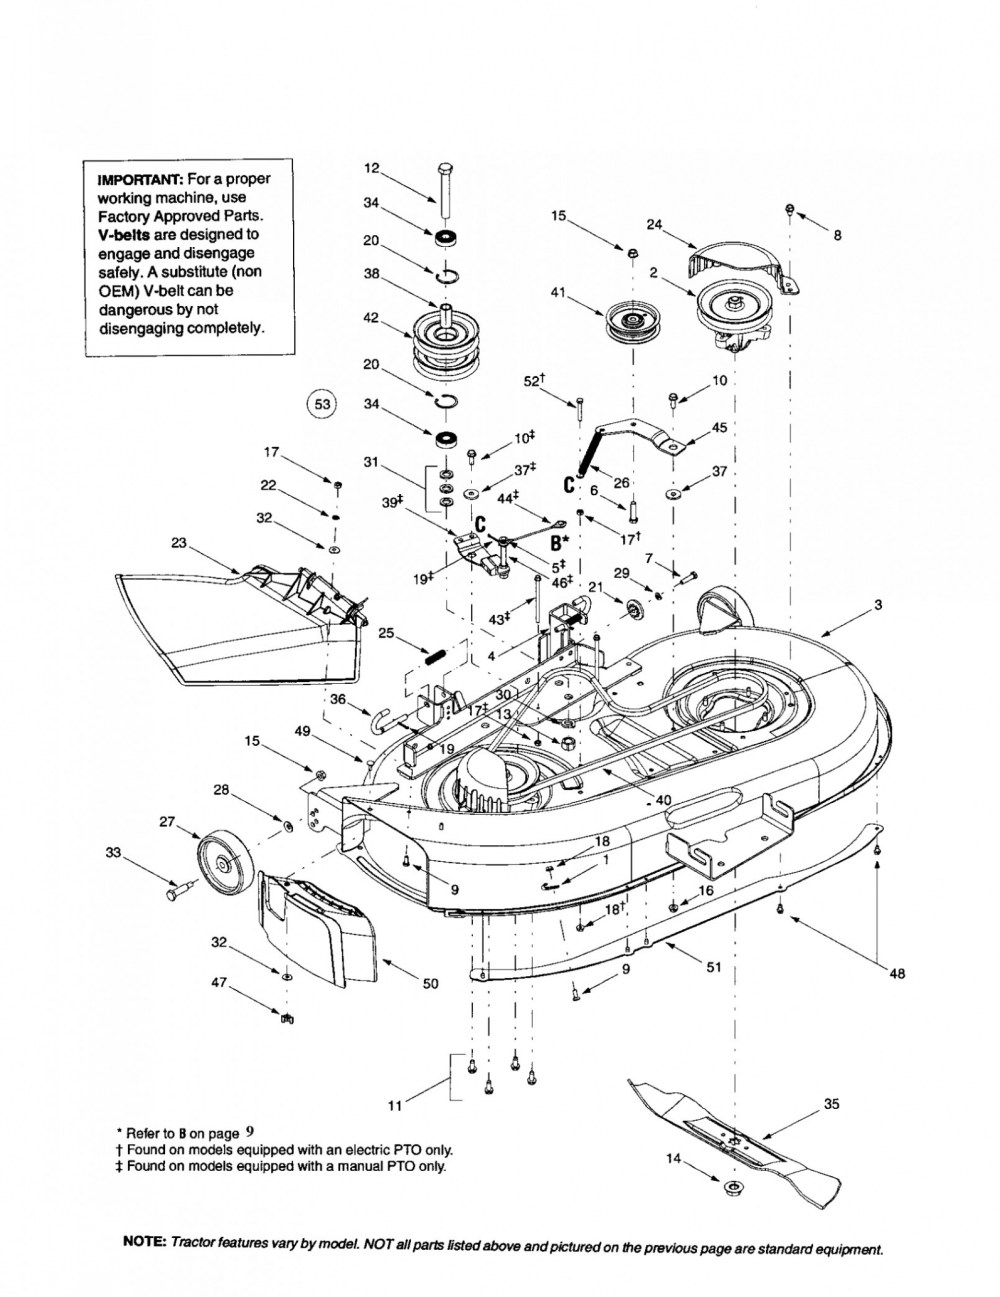 medium resolution of 1594x2069 mtd mower parts diagram wiring diagram for huskee lawn tractor lawn mower drawing